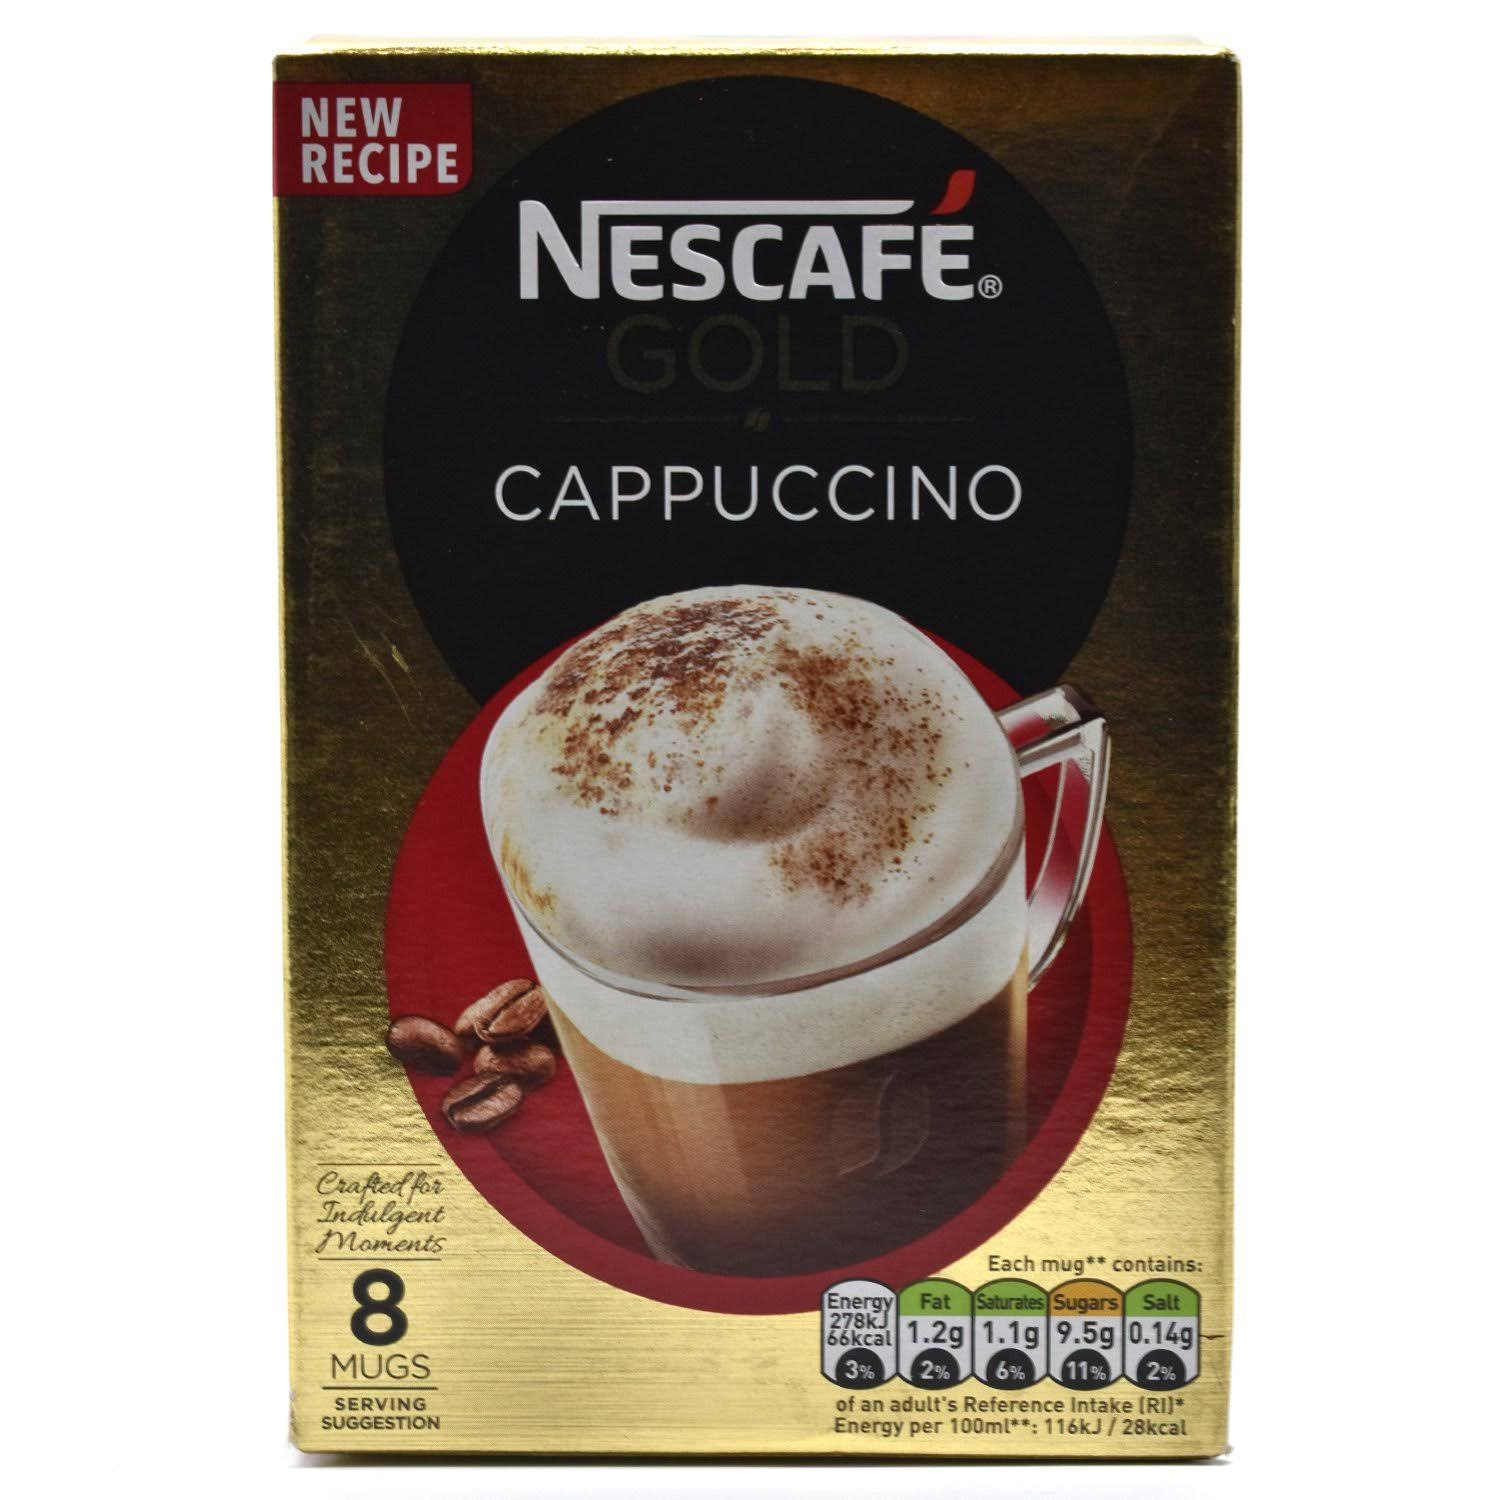 Nescafe Gold Coffee - Cappuccino, 8 Sachets, 136g